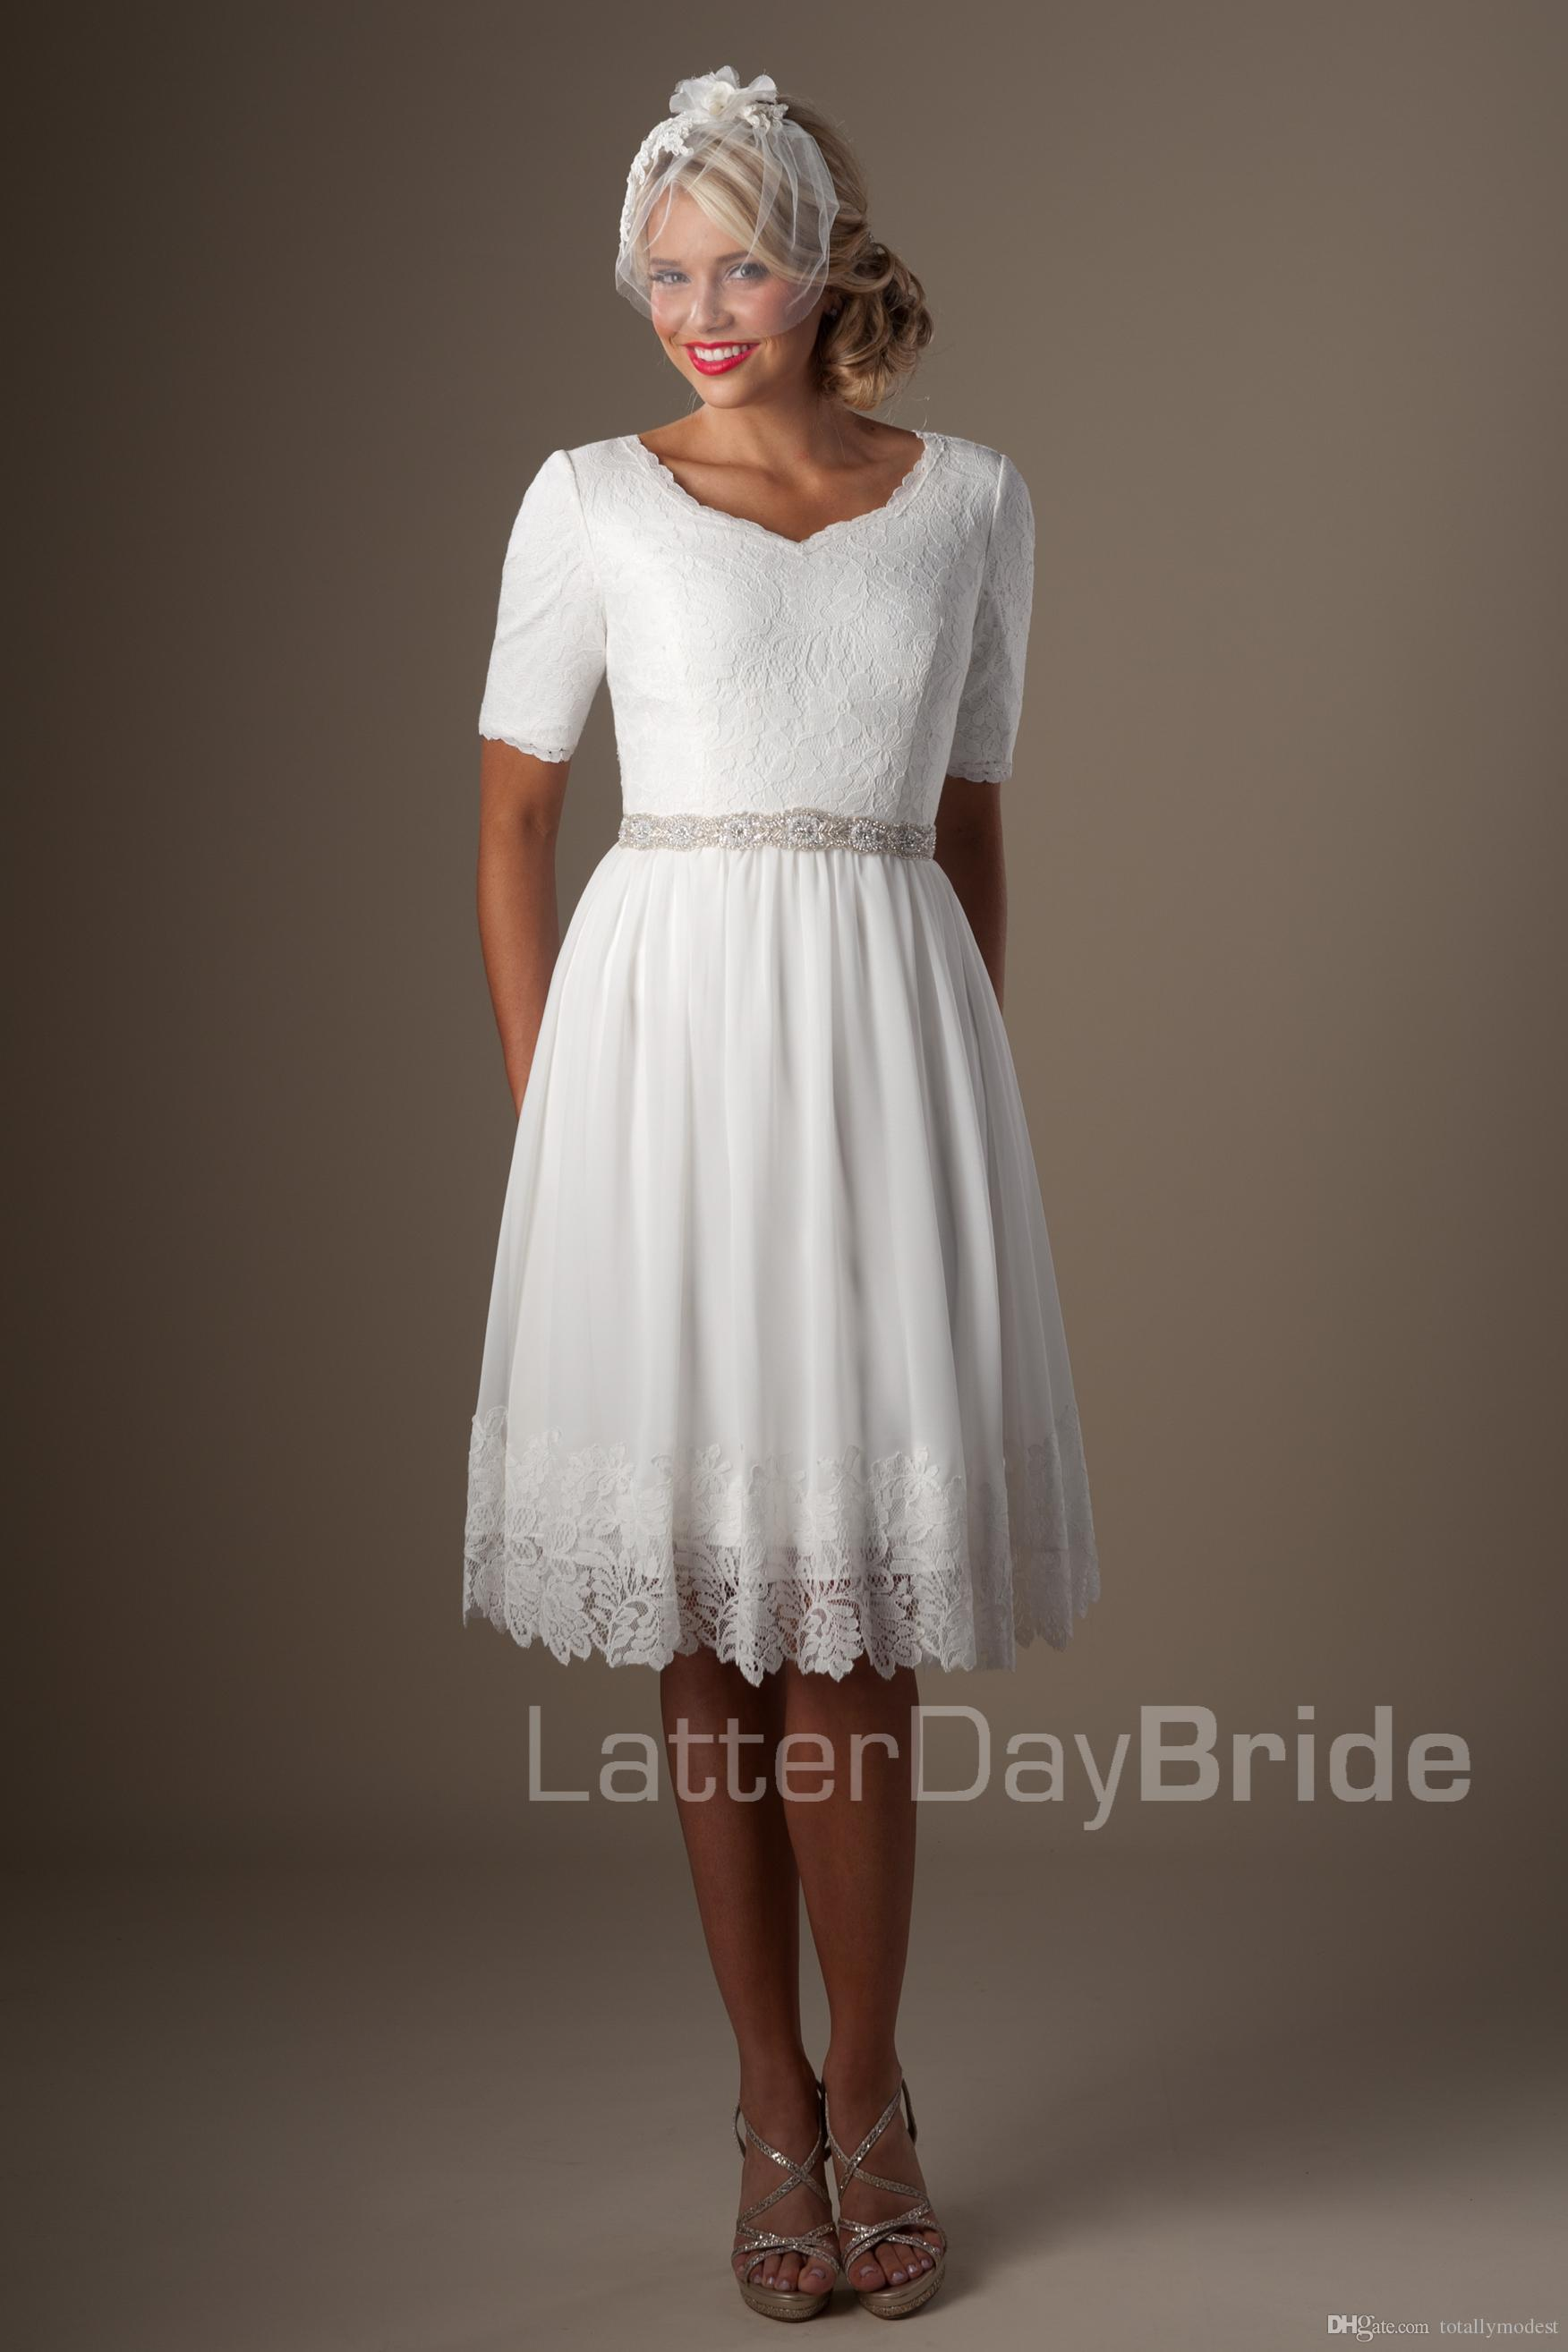 Discount Ivory Lace Chiffon Short Informal Modest Wedding Dresses With Half Sleeves Knee Length Vintage Reception For Casual: Vintage Tea Length Modest Wedding Dresses At Websimilar.org